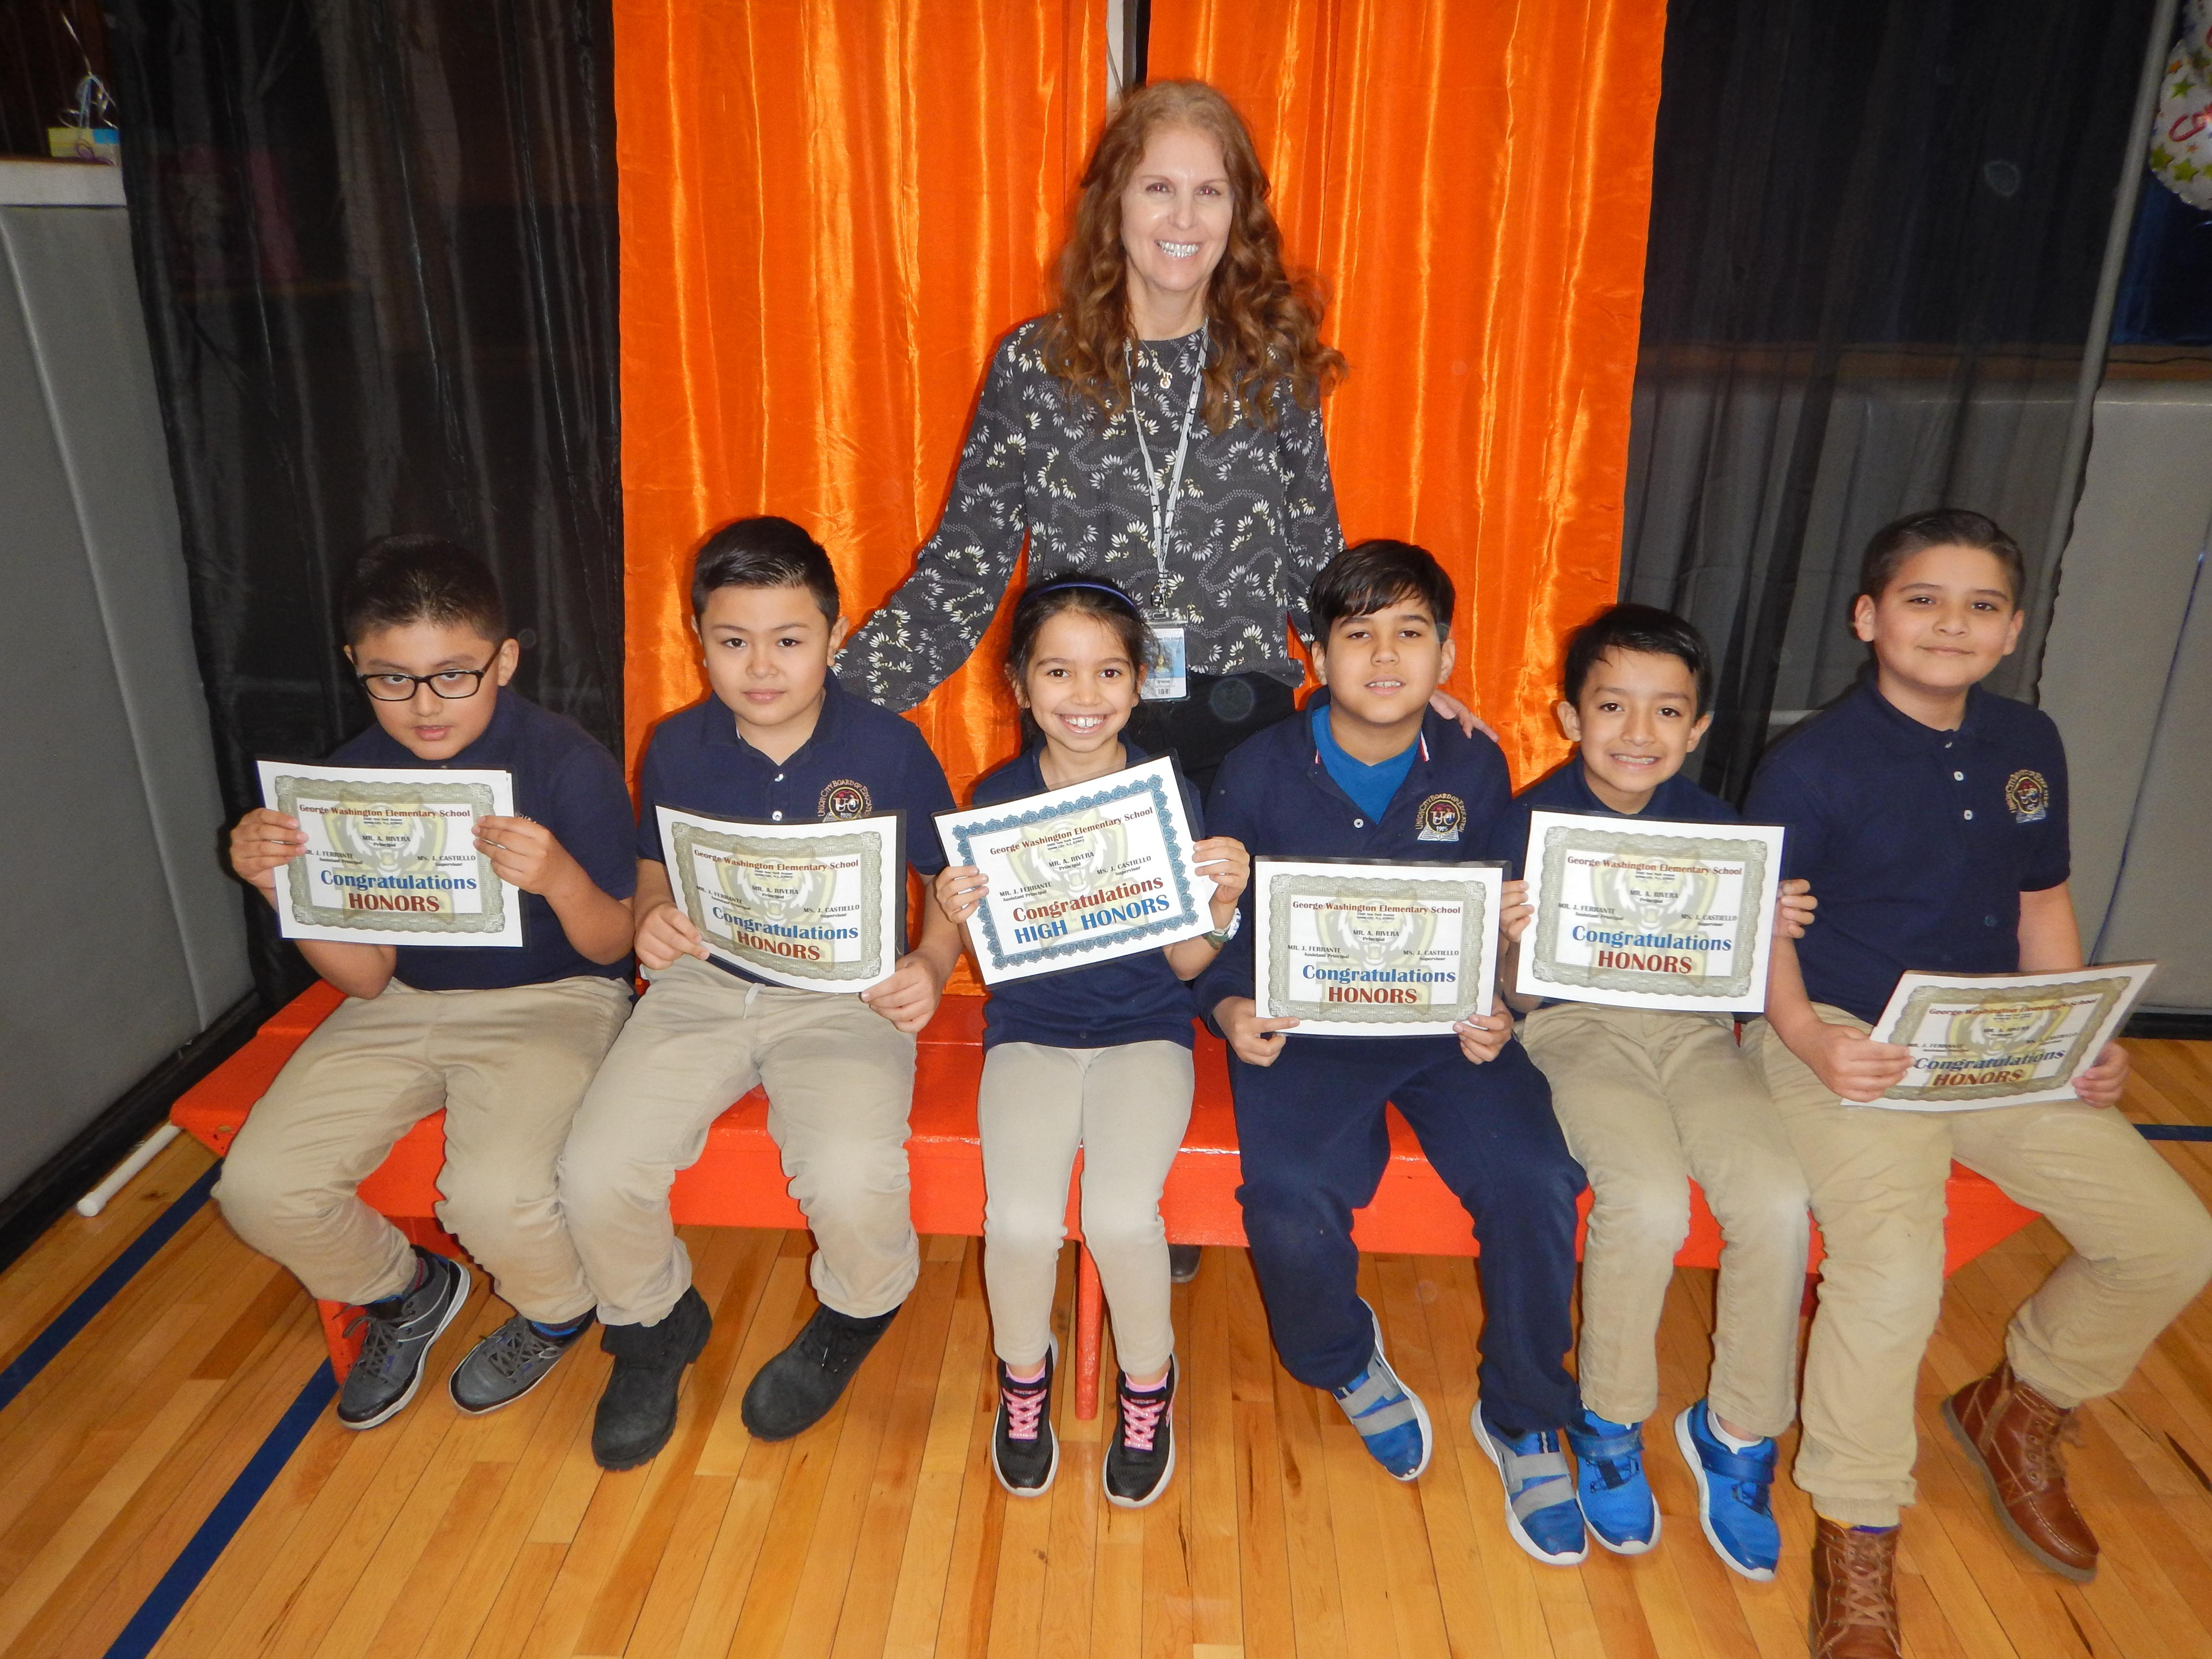 6 Honor Roll Students with their Teacher and certificates